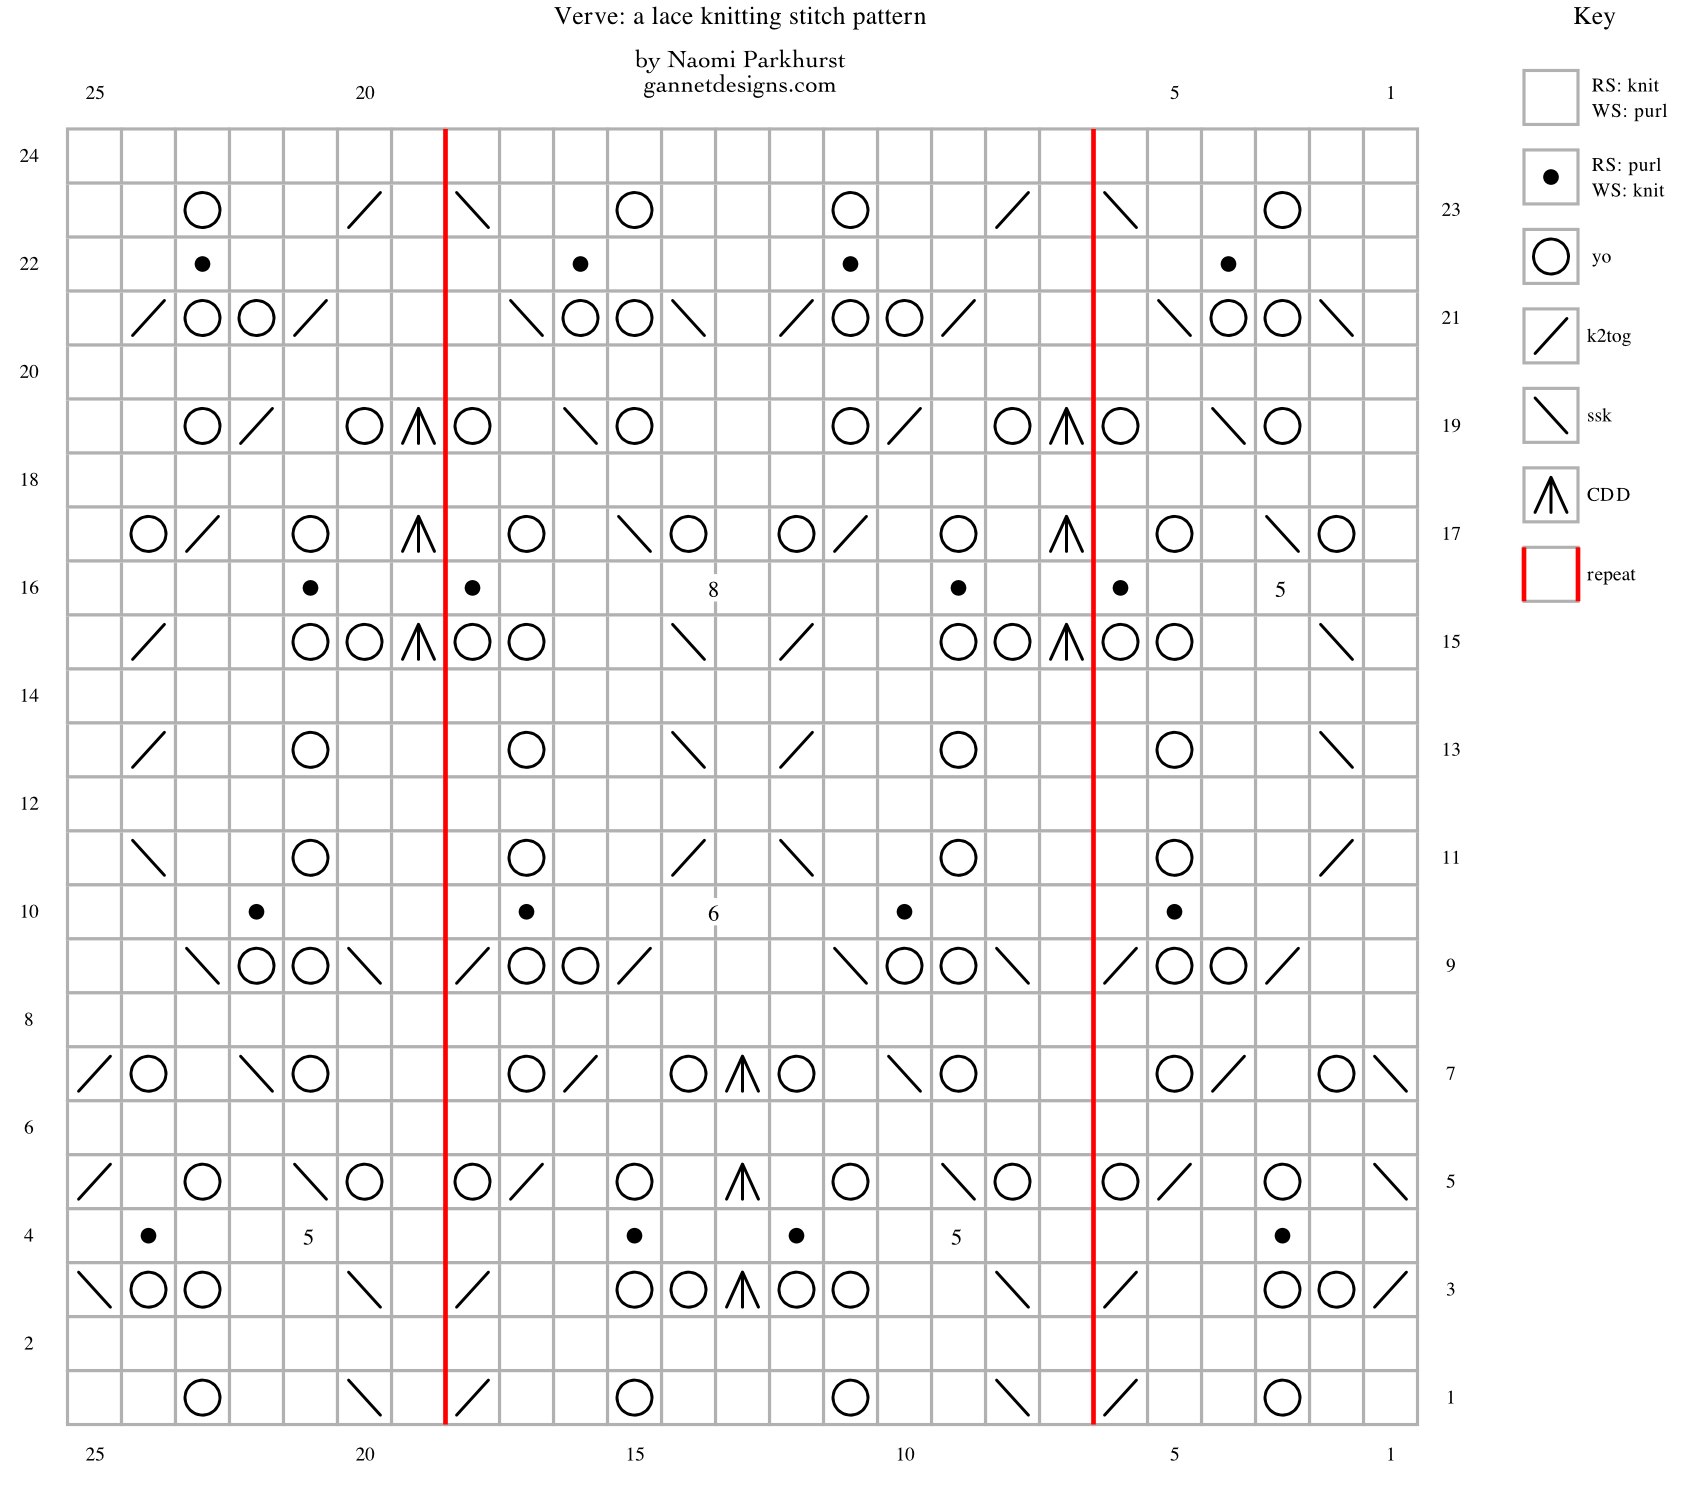 Chart showing how to knit Verve lace by way of symbols